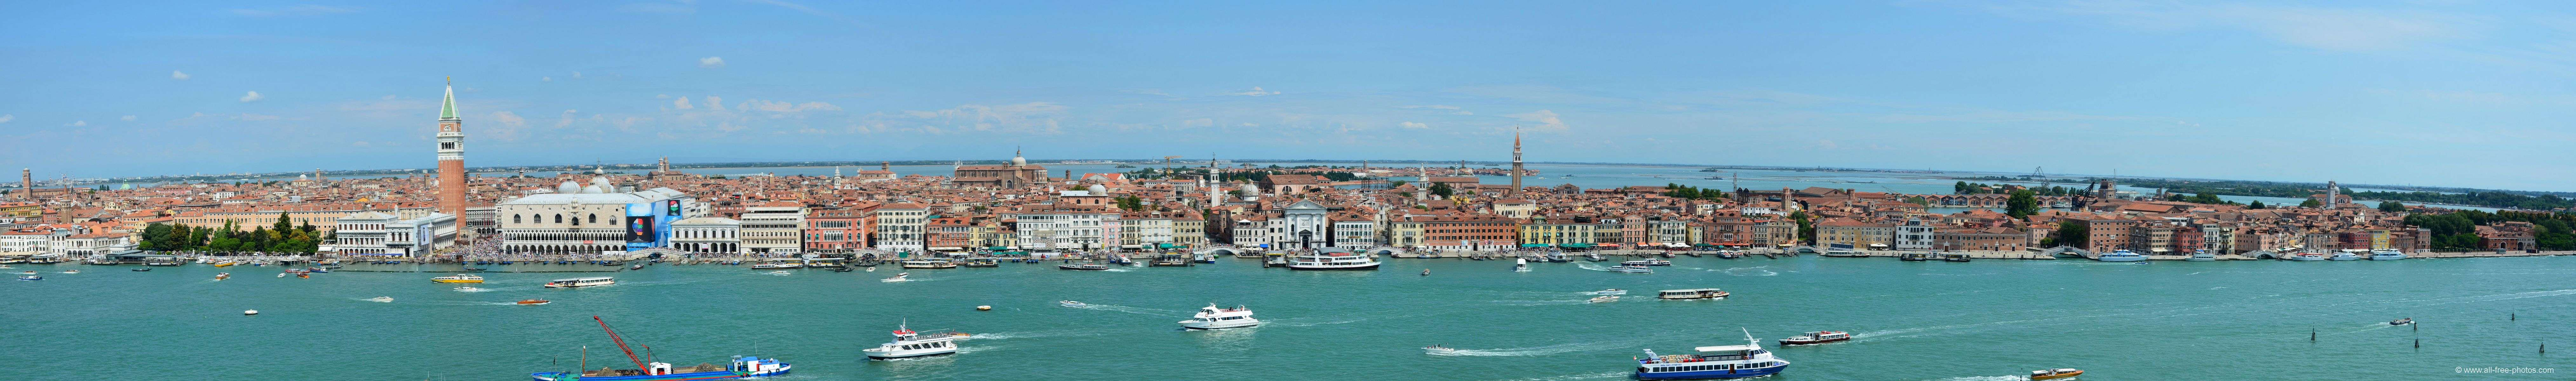 General view - Venice